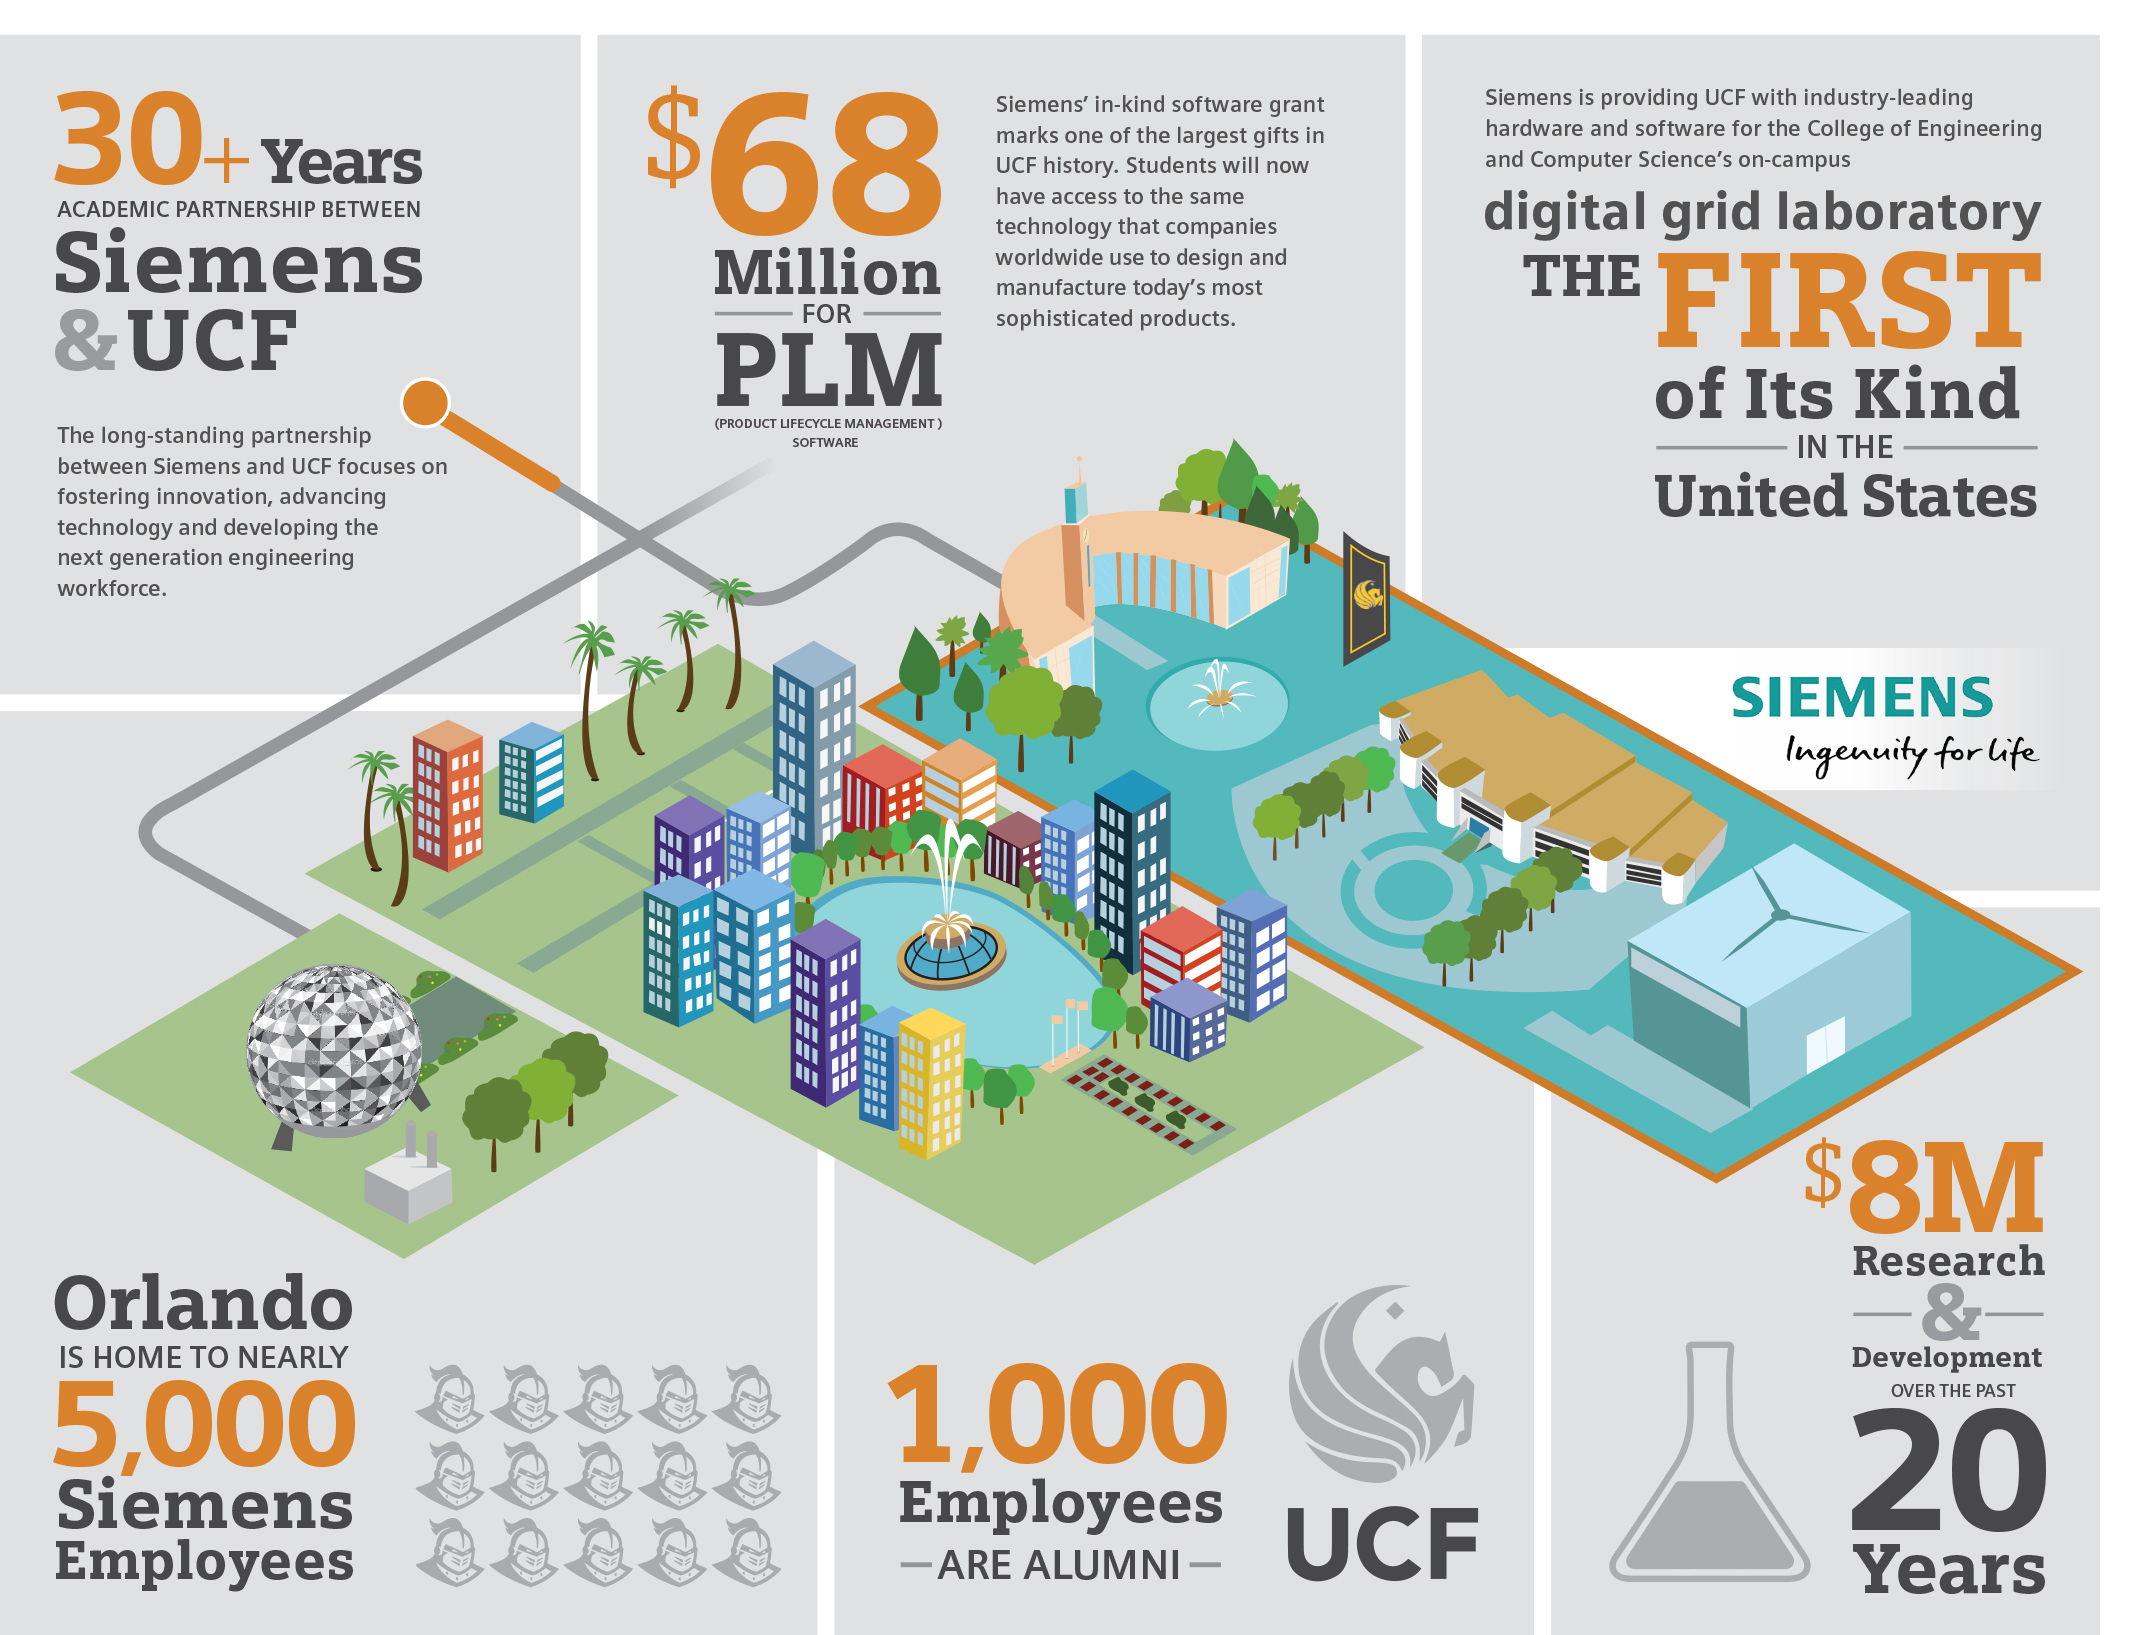 UCF Receives Software Grant Valued at $68 Million from Siemens